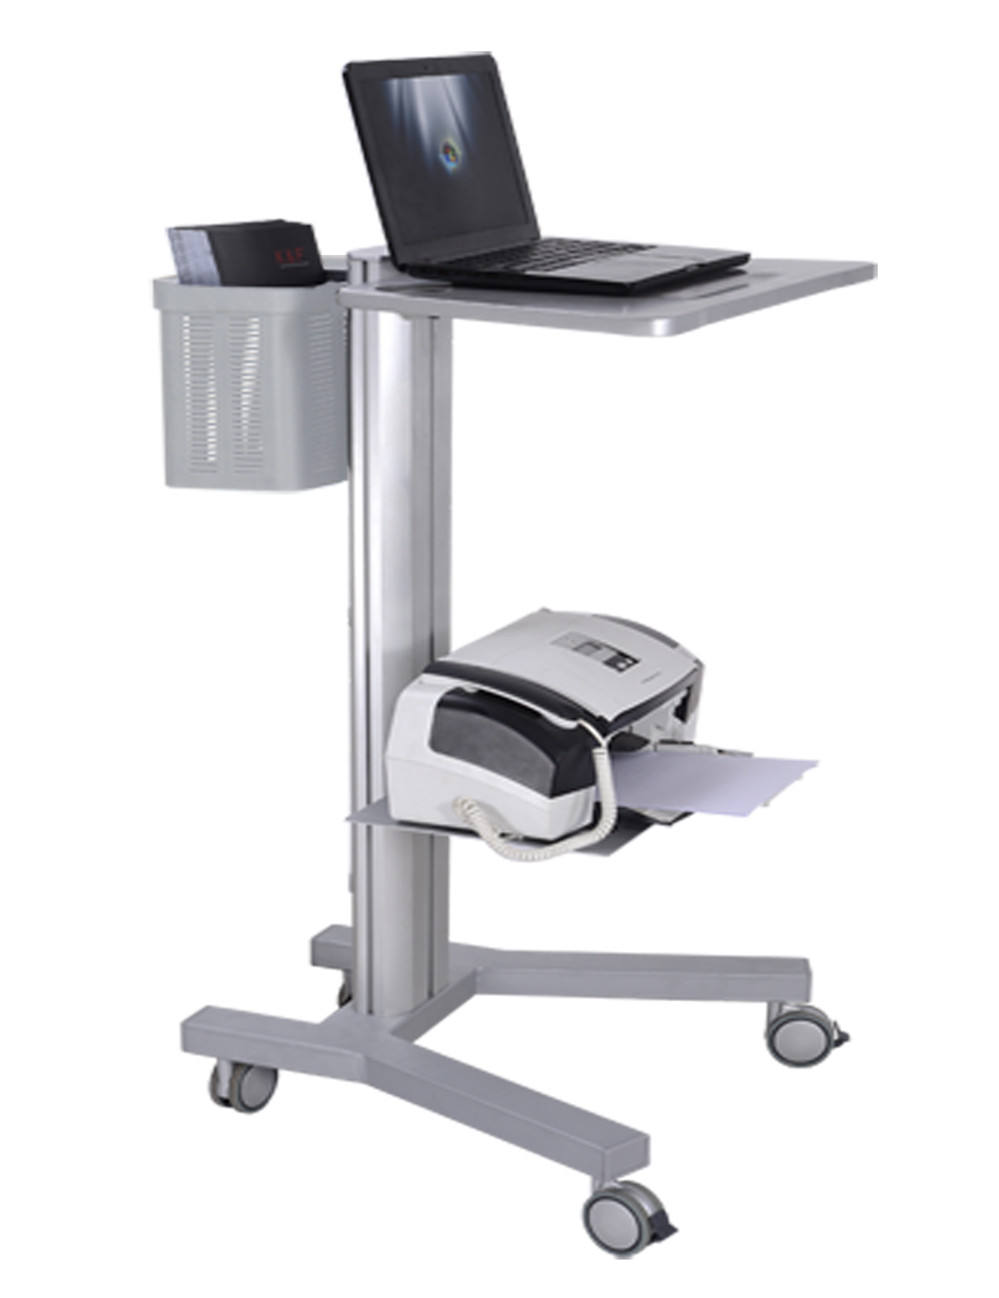 All In One Height Adjustable Industrial Laboratory Medical Hospital Workstation Mobile Rolling Laptop Computer Cart Trolley